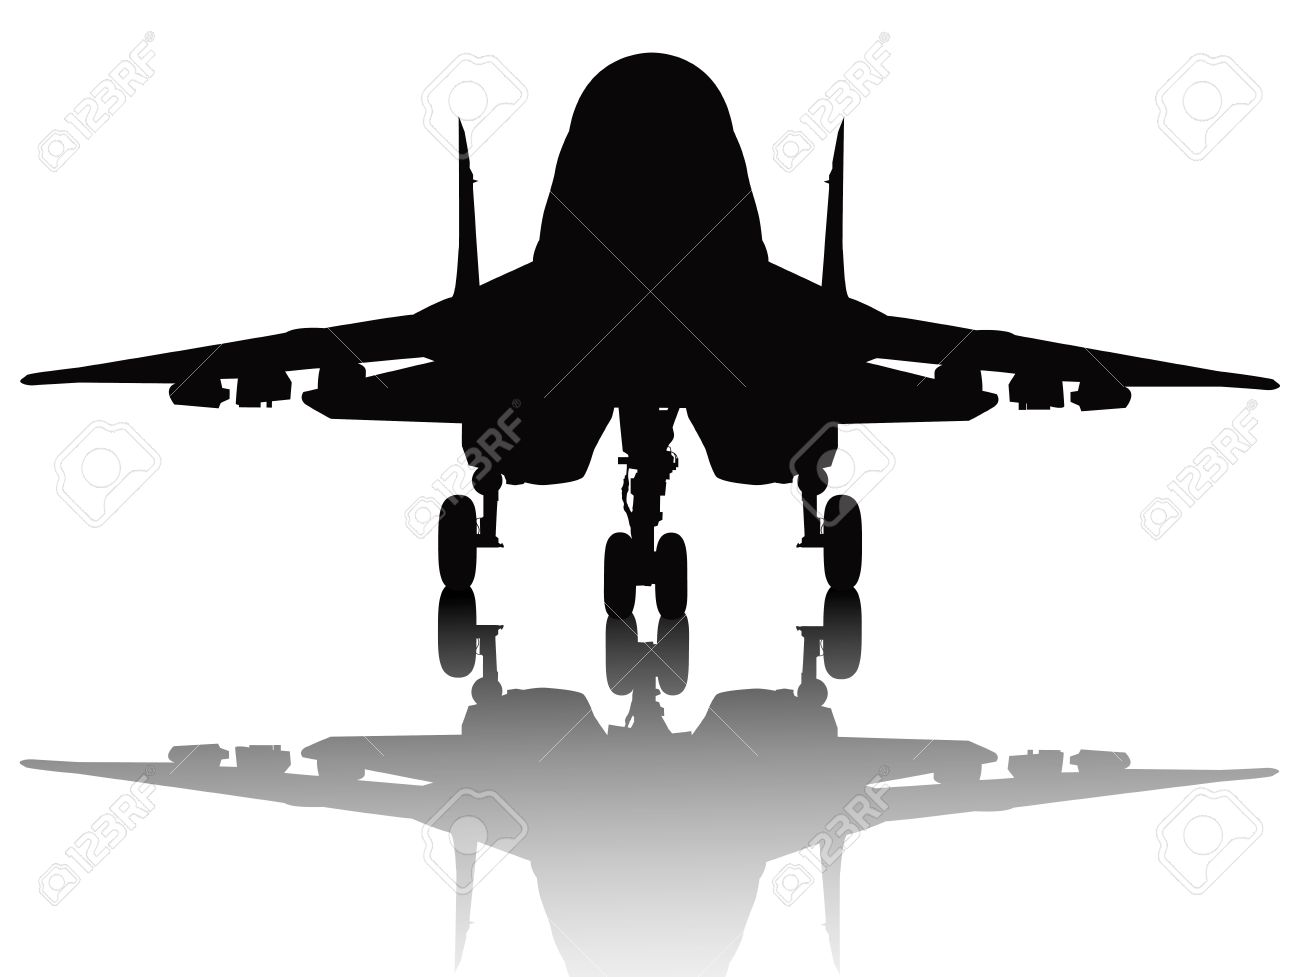 Jet fighter with reflection detailed silhouette  Separate layers Stock Vector - 14163185